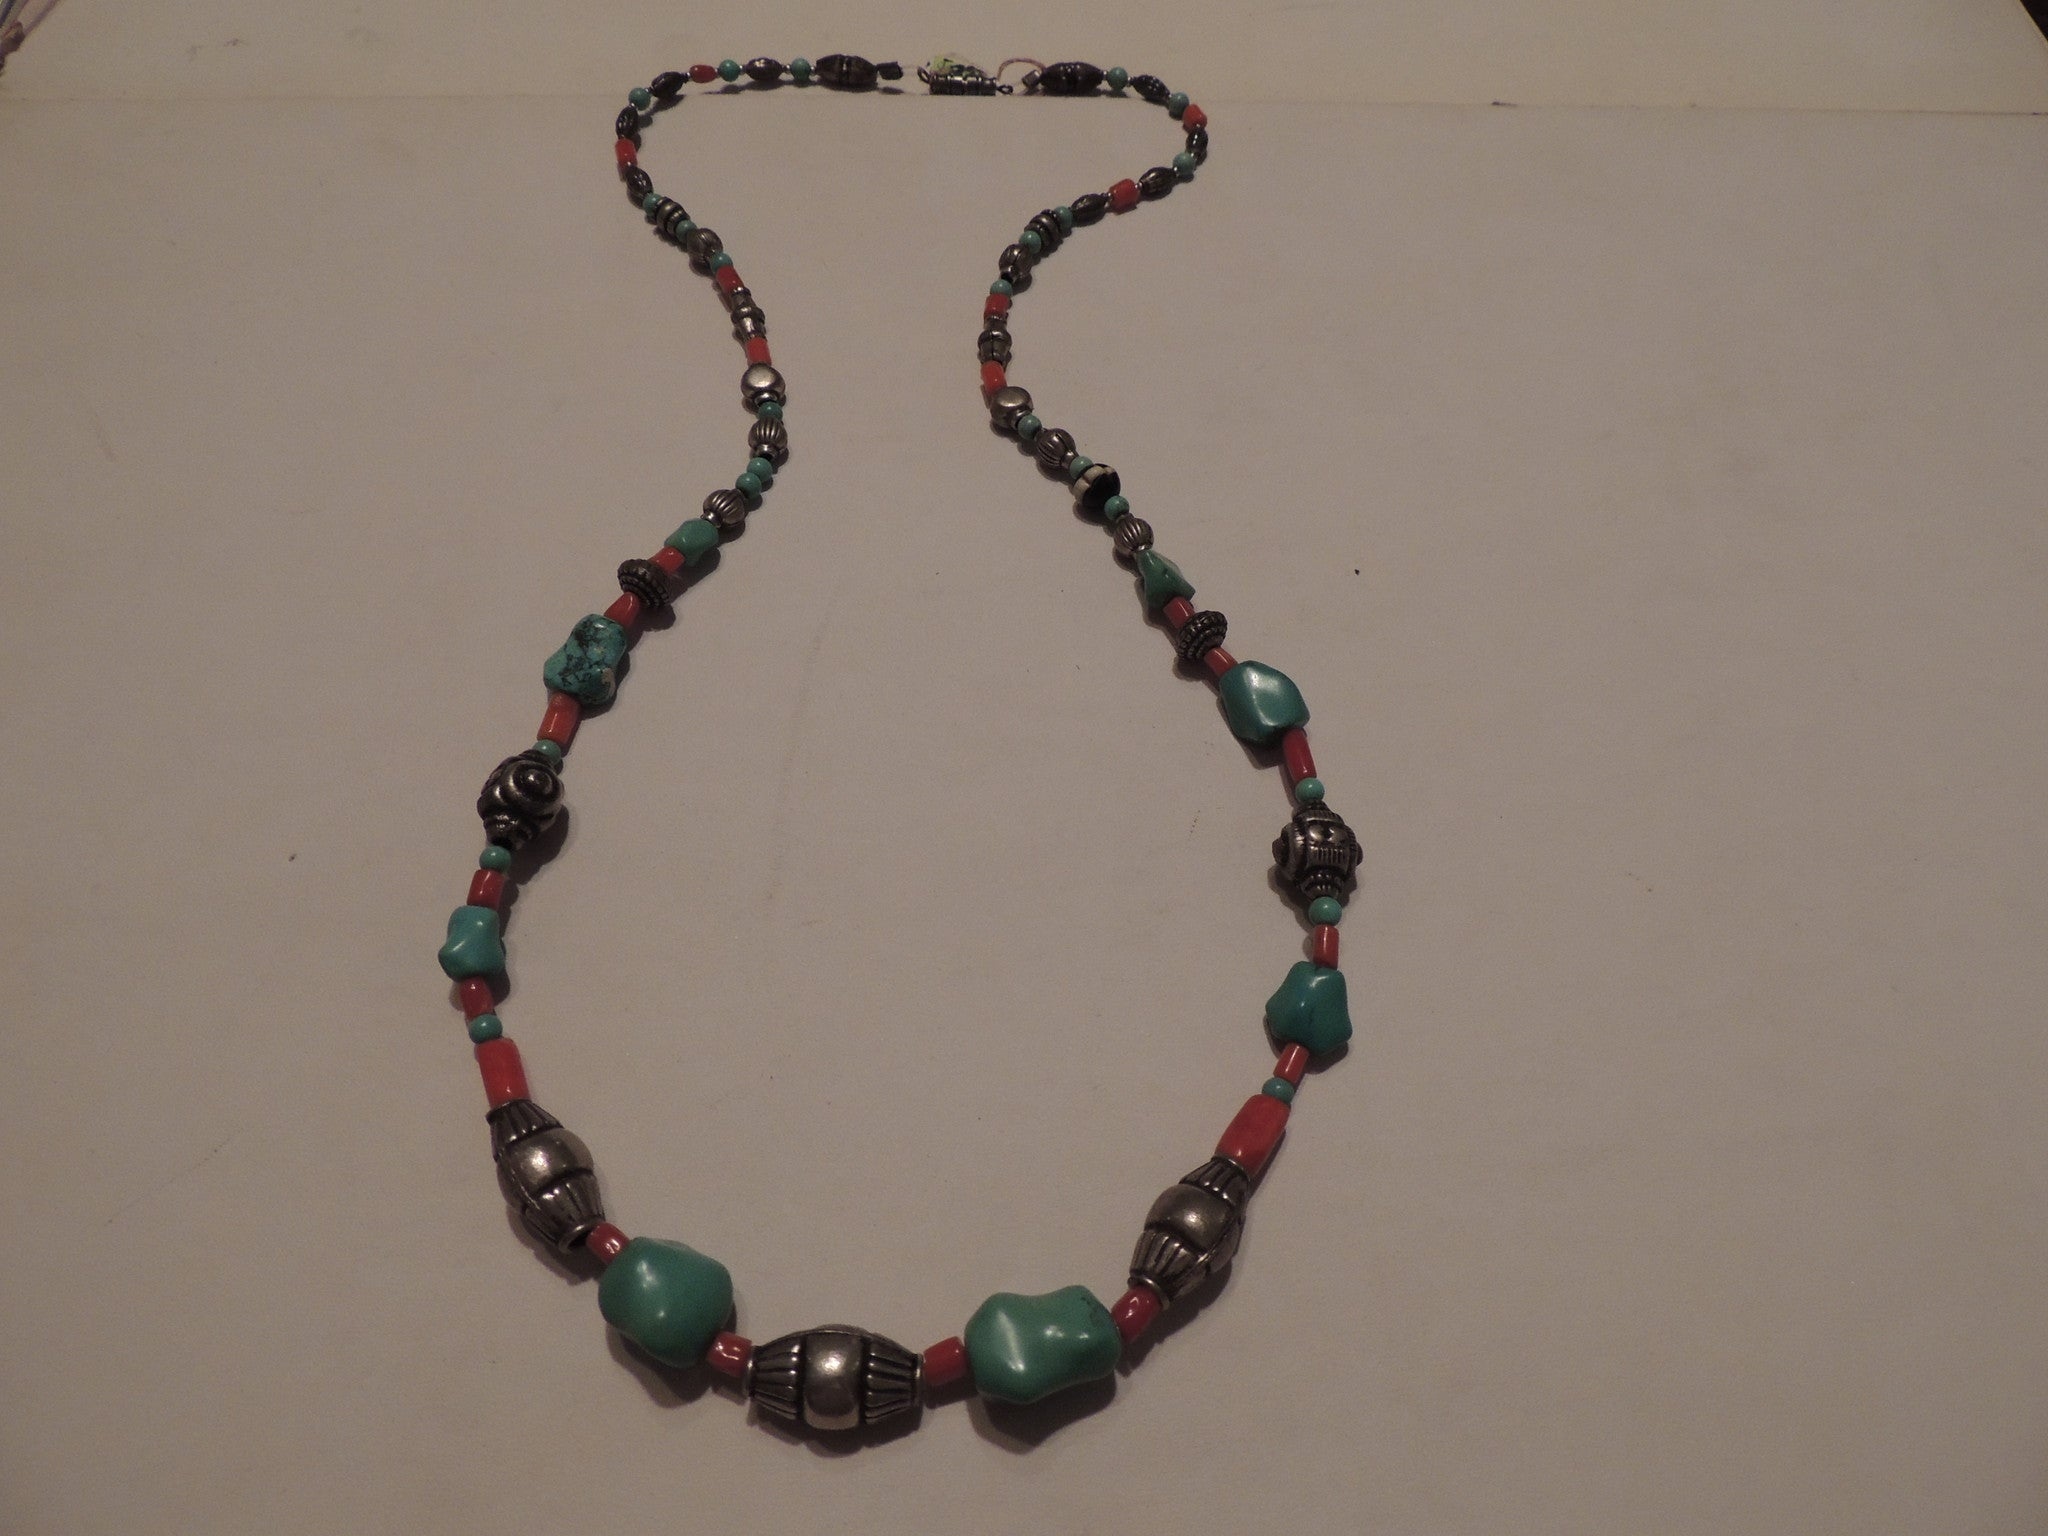 Primitive Style Design Necklace, designed by George Alexanian